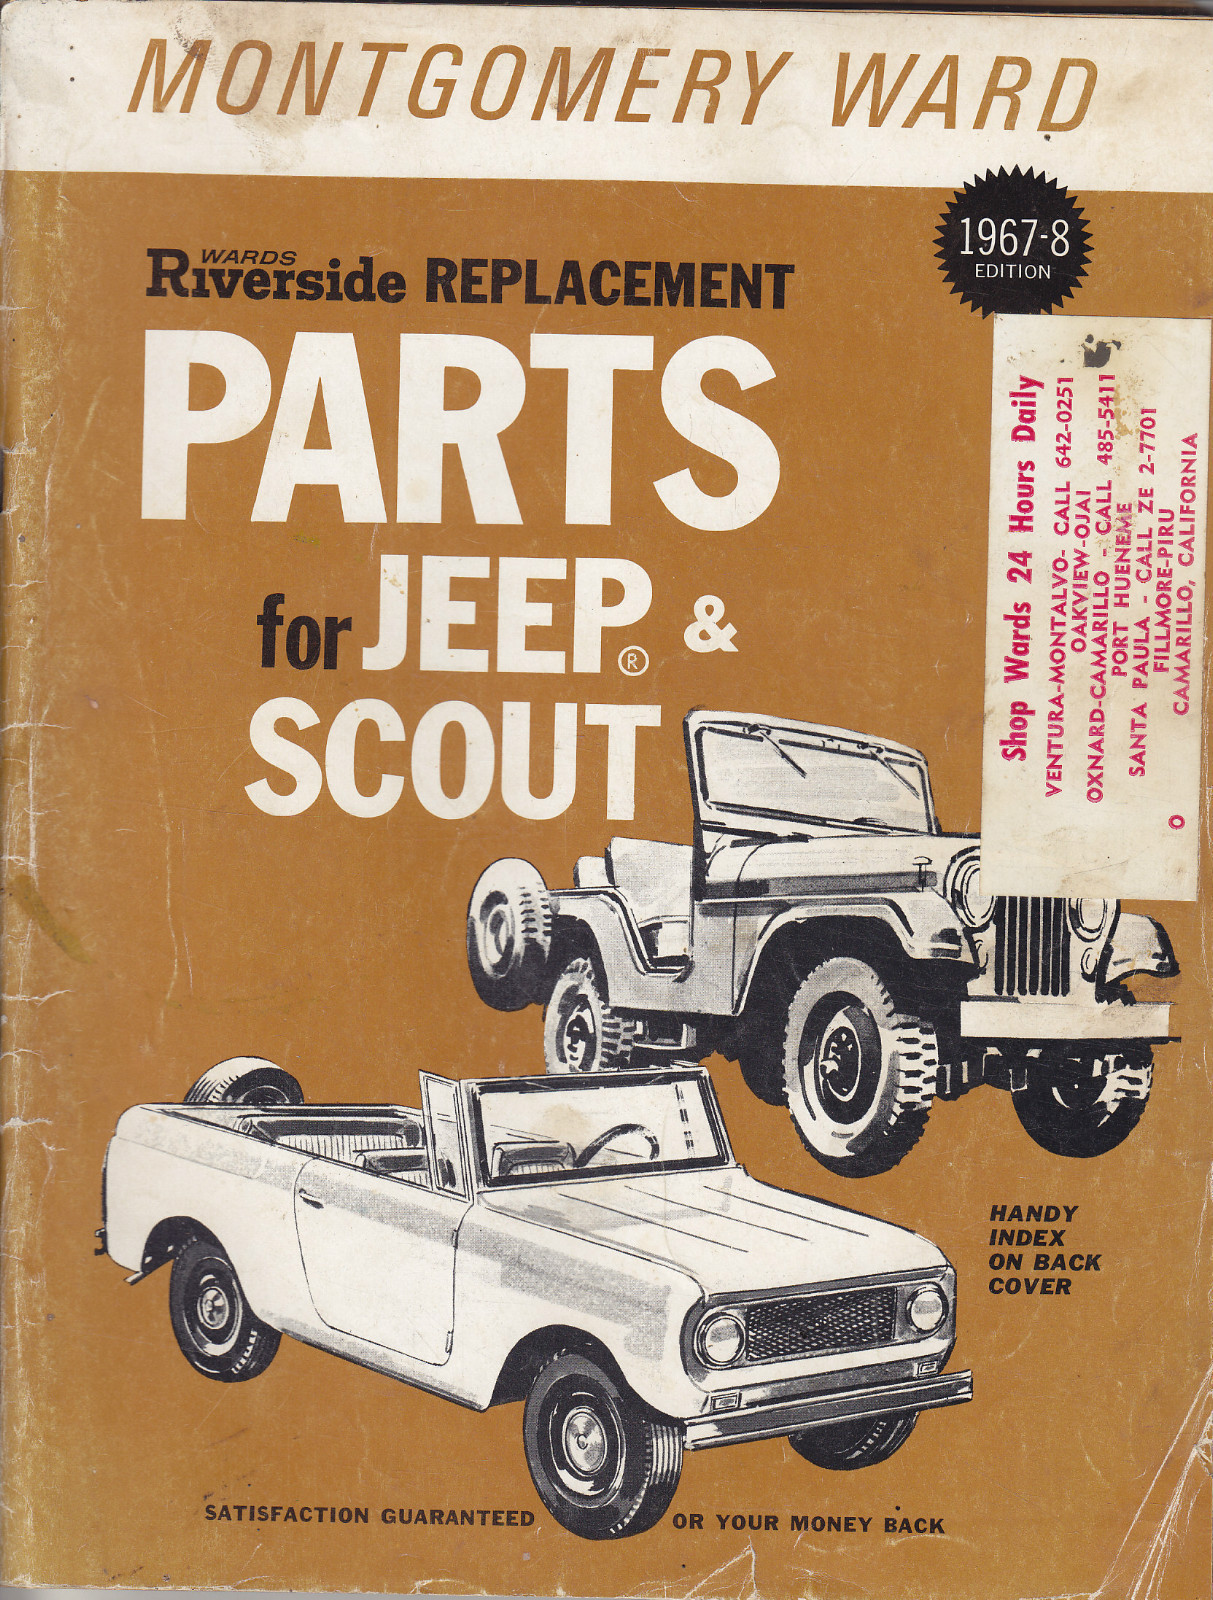 1968 Montgomery Ward Replacement Parts Book on eBay | eWillys